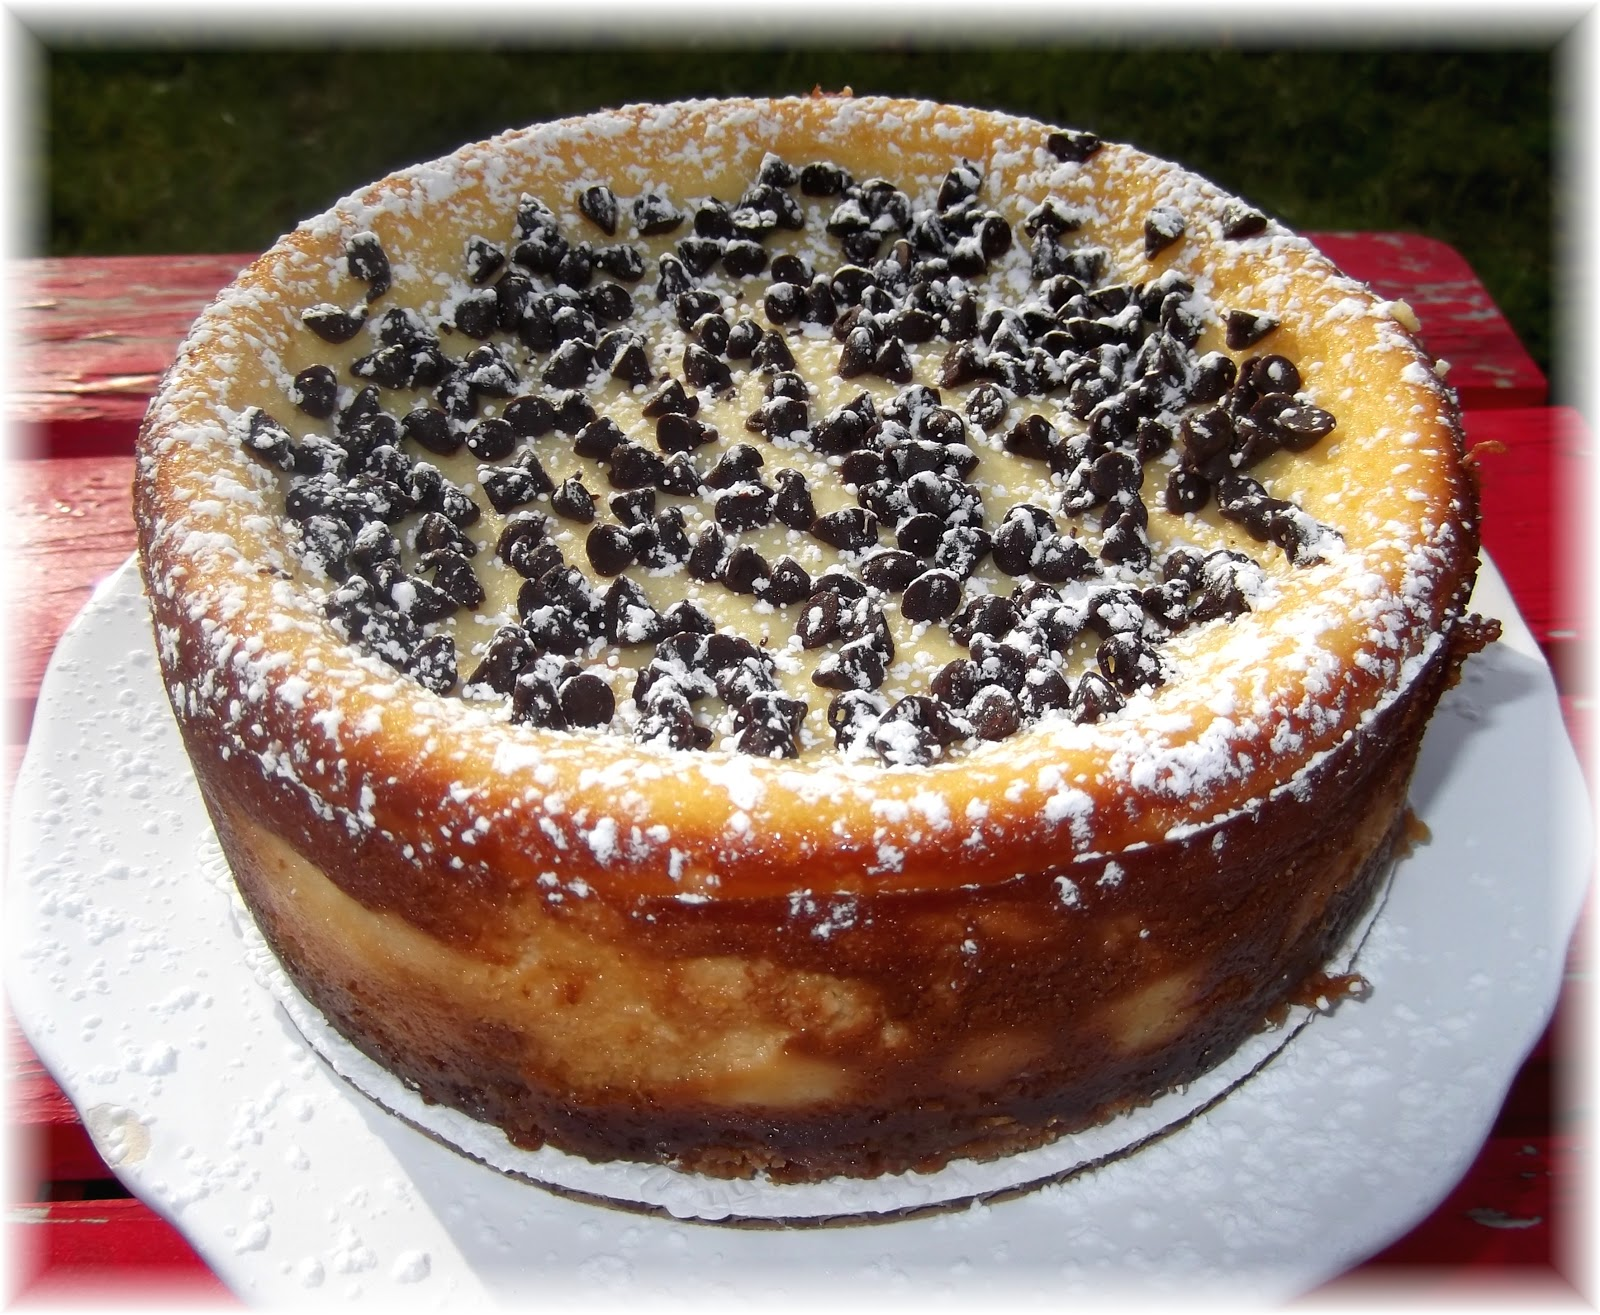 Rosie's Country Baking: Cannoli Cheesecake!